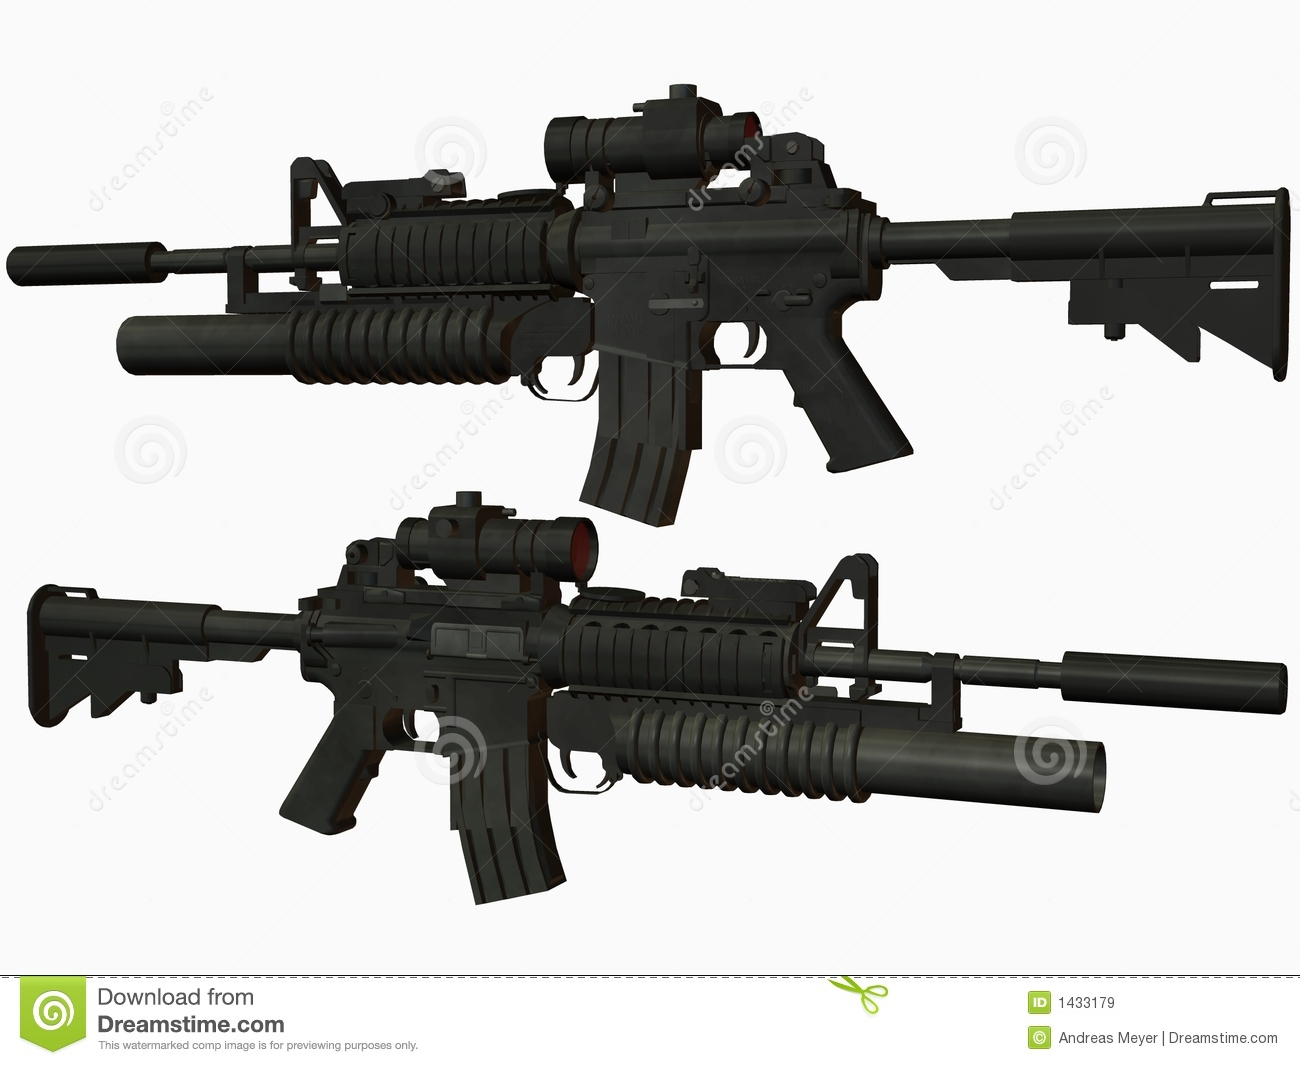 M4 Weapon Royalty Free Stock Images - Image: 1433179 M16 Airsoft Gun